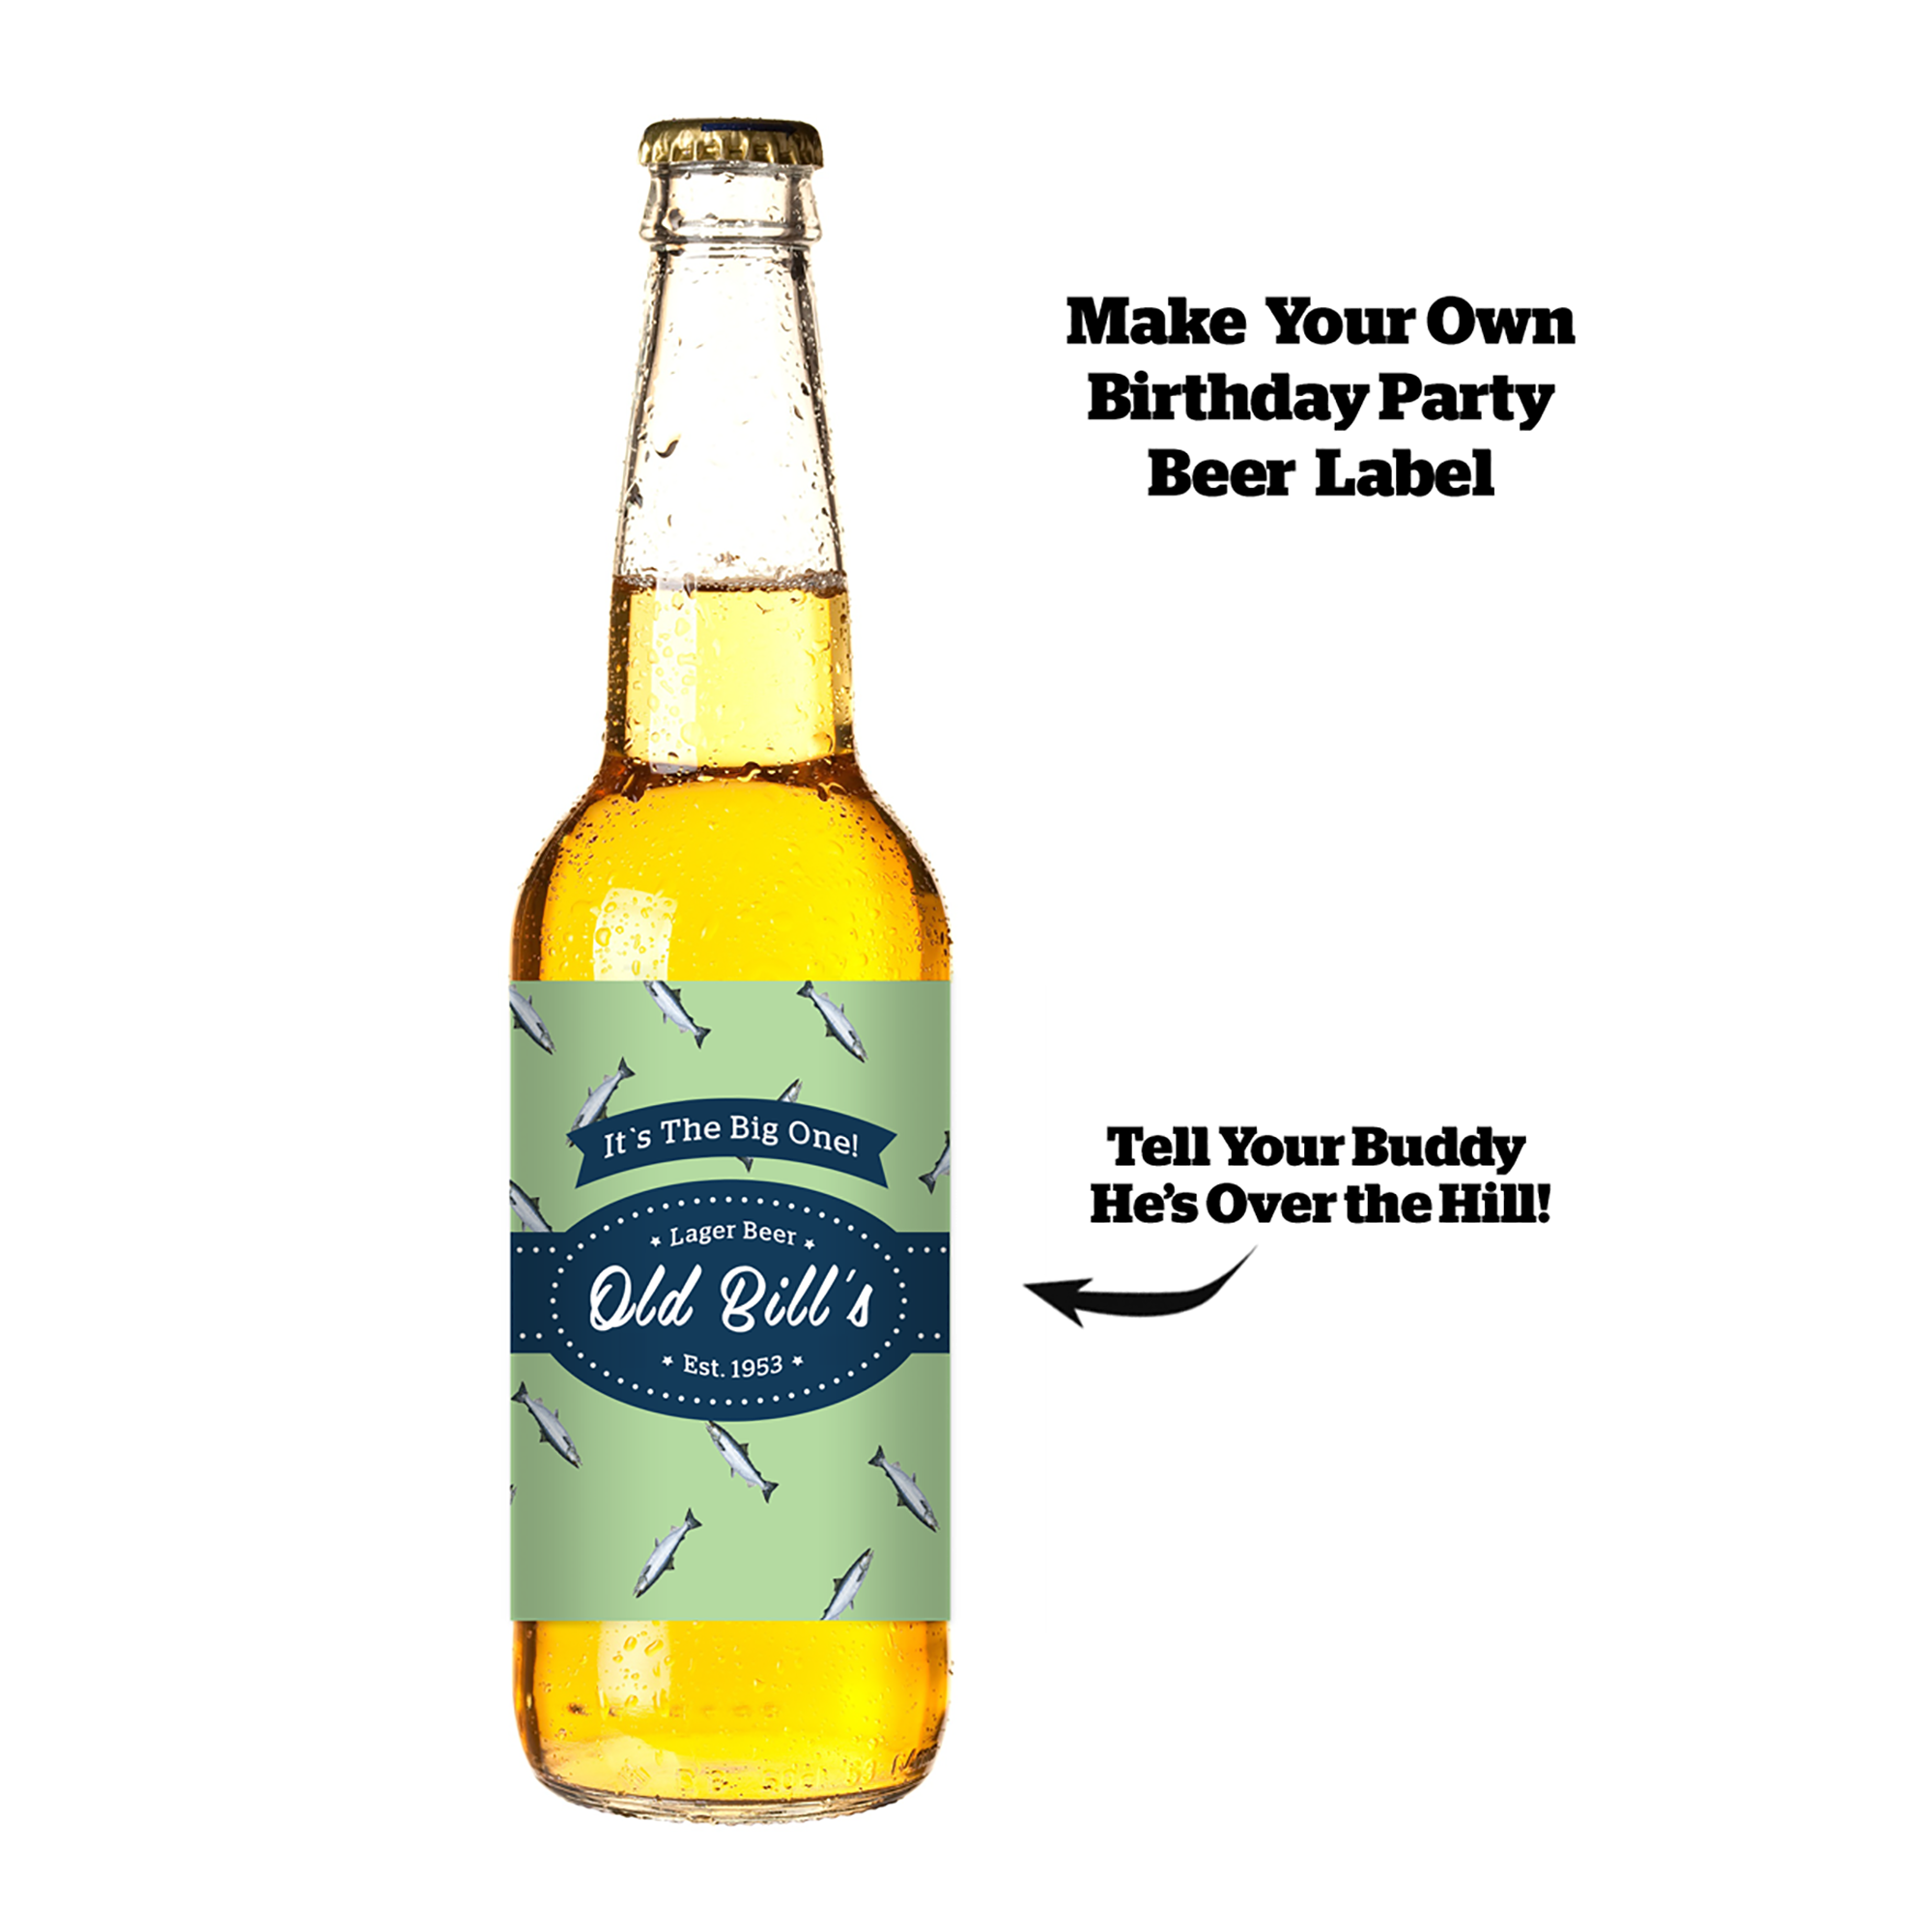 photograph regarding Printable Beer Bottle Labels referred to as Custom-made Beer Bottle Label - For Electronic T-blouse